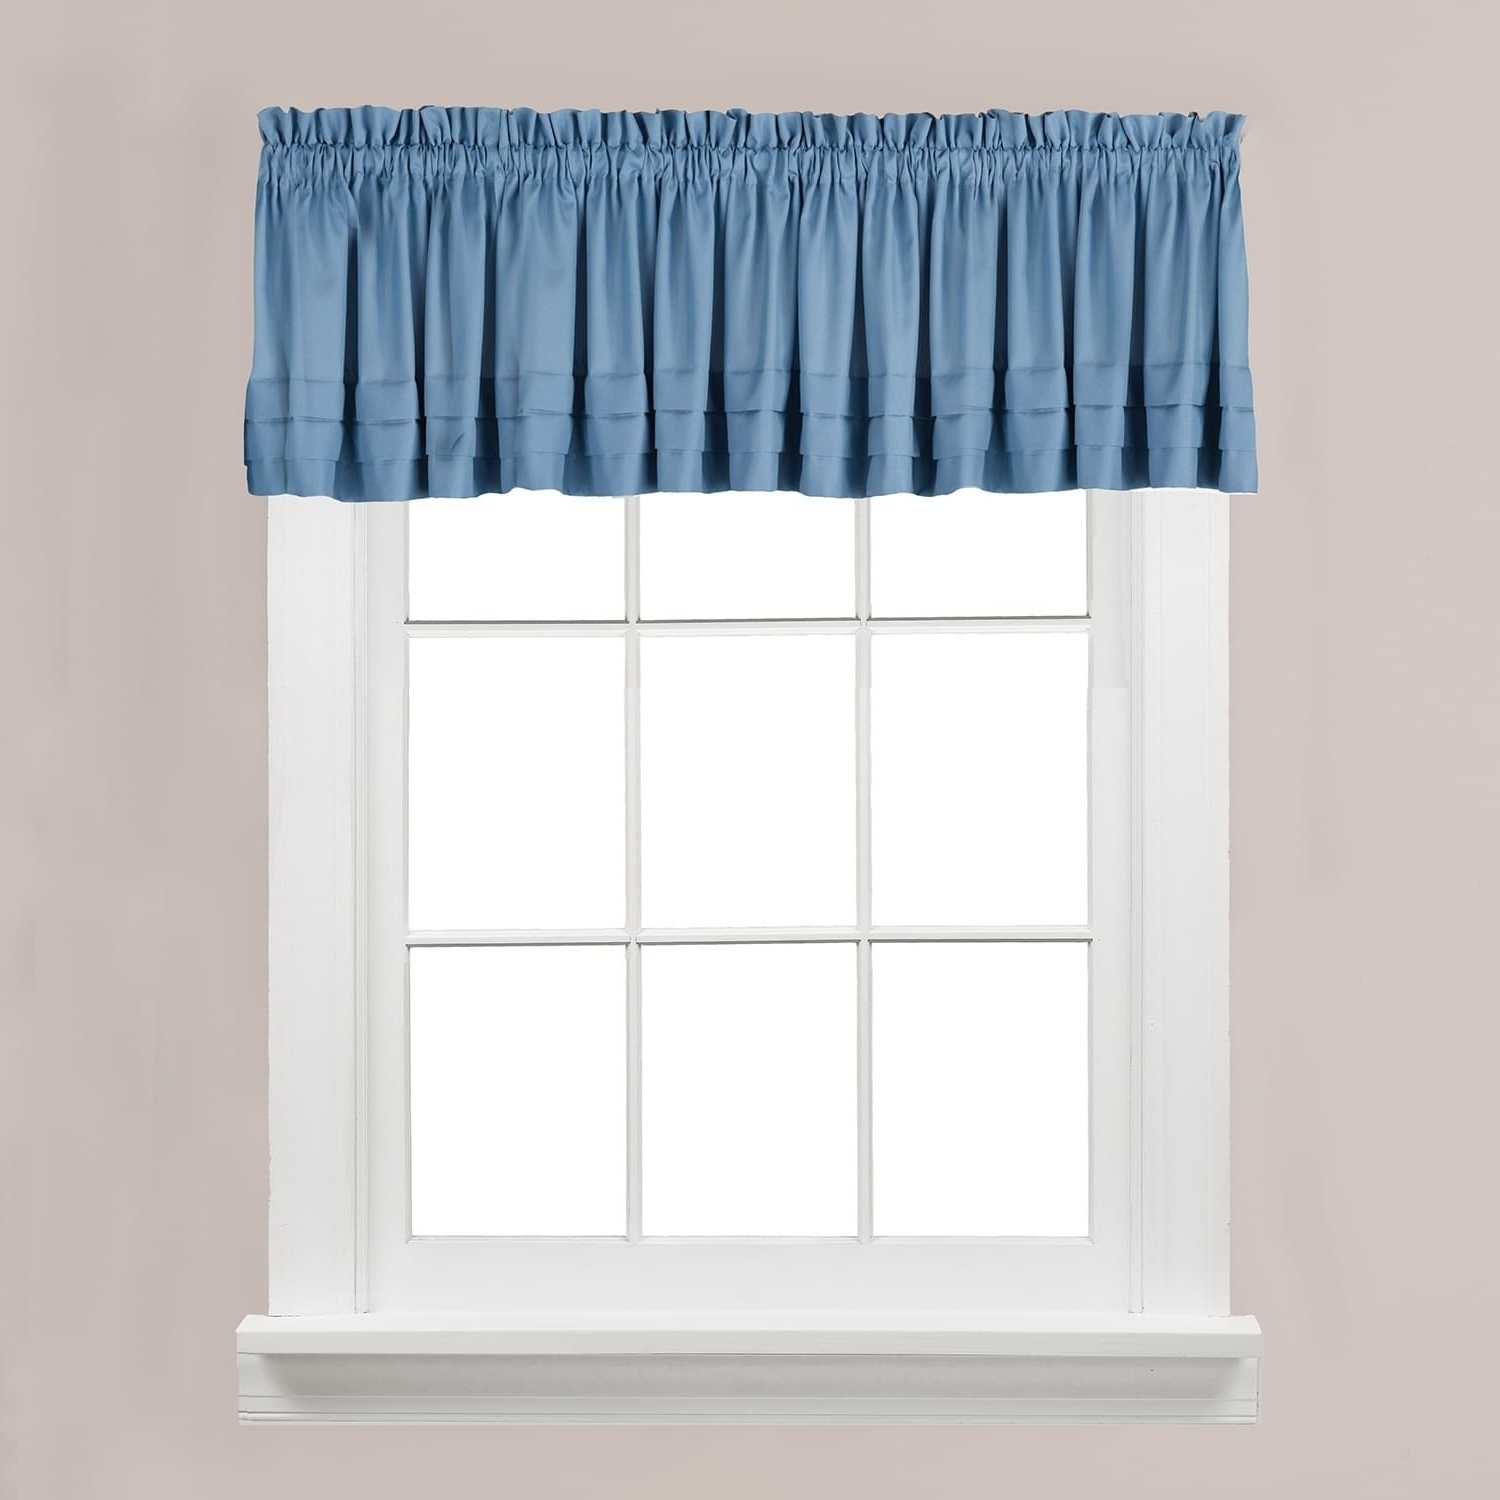 Most Recent Flinders Forge 24 Inch Tier Pairs In Navy For The Gray Barn Flinders Forge Valance In Smoke, Blue ( (View 10 of 14)